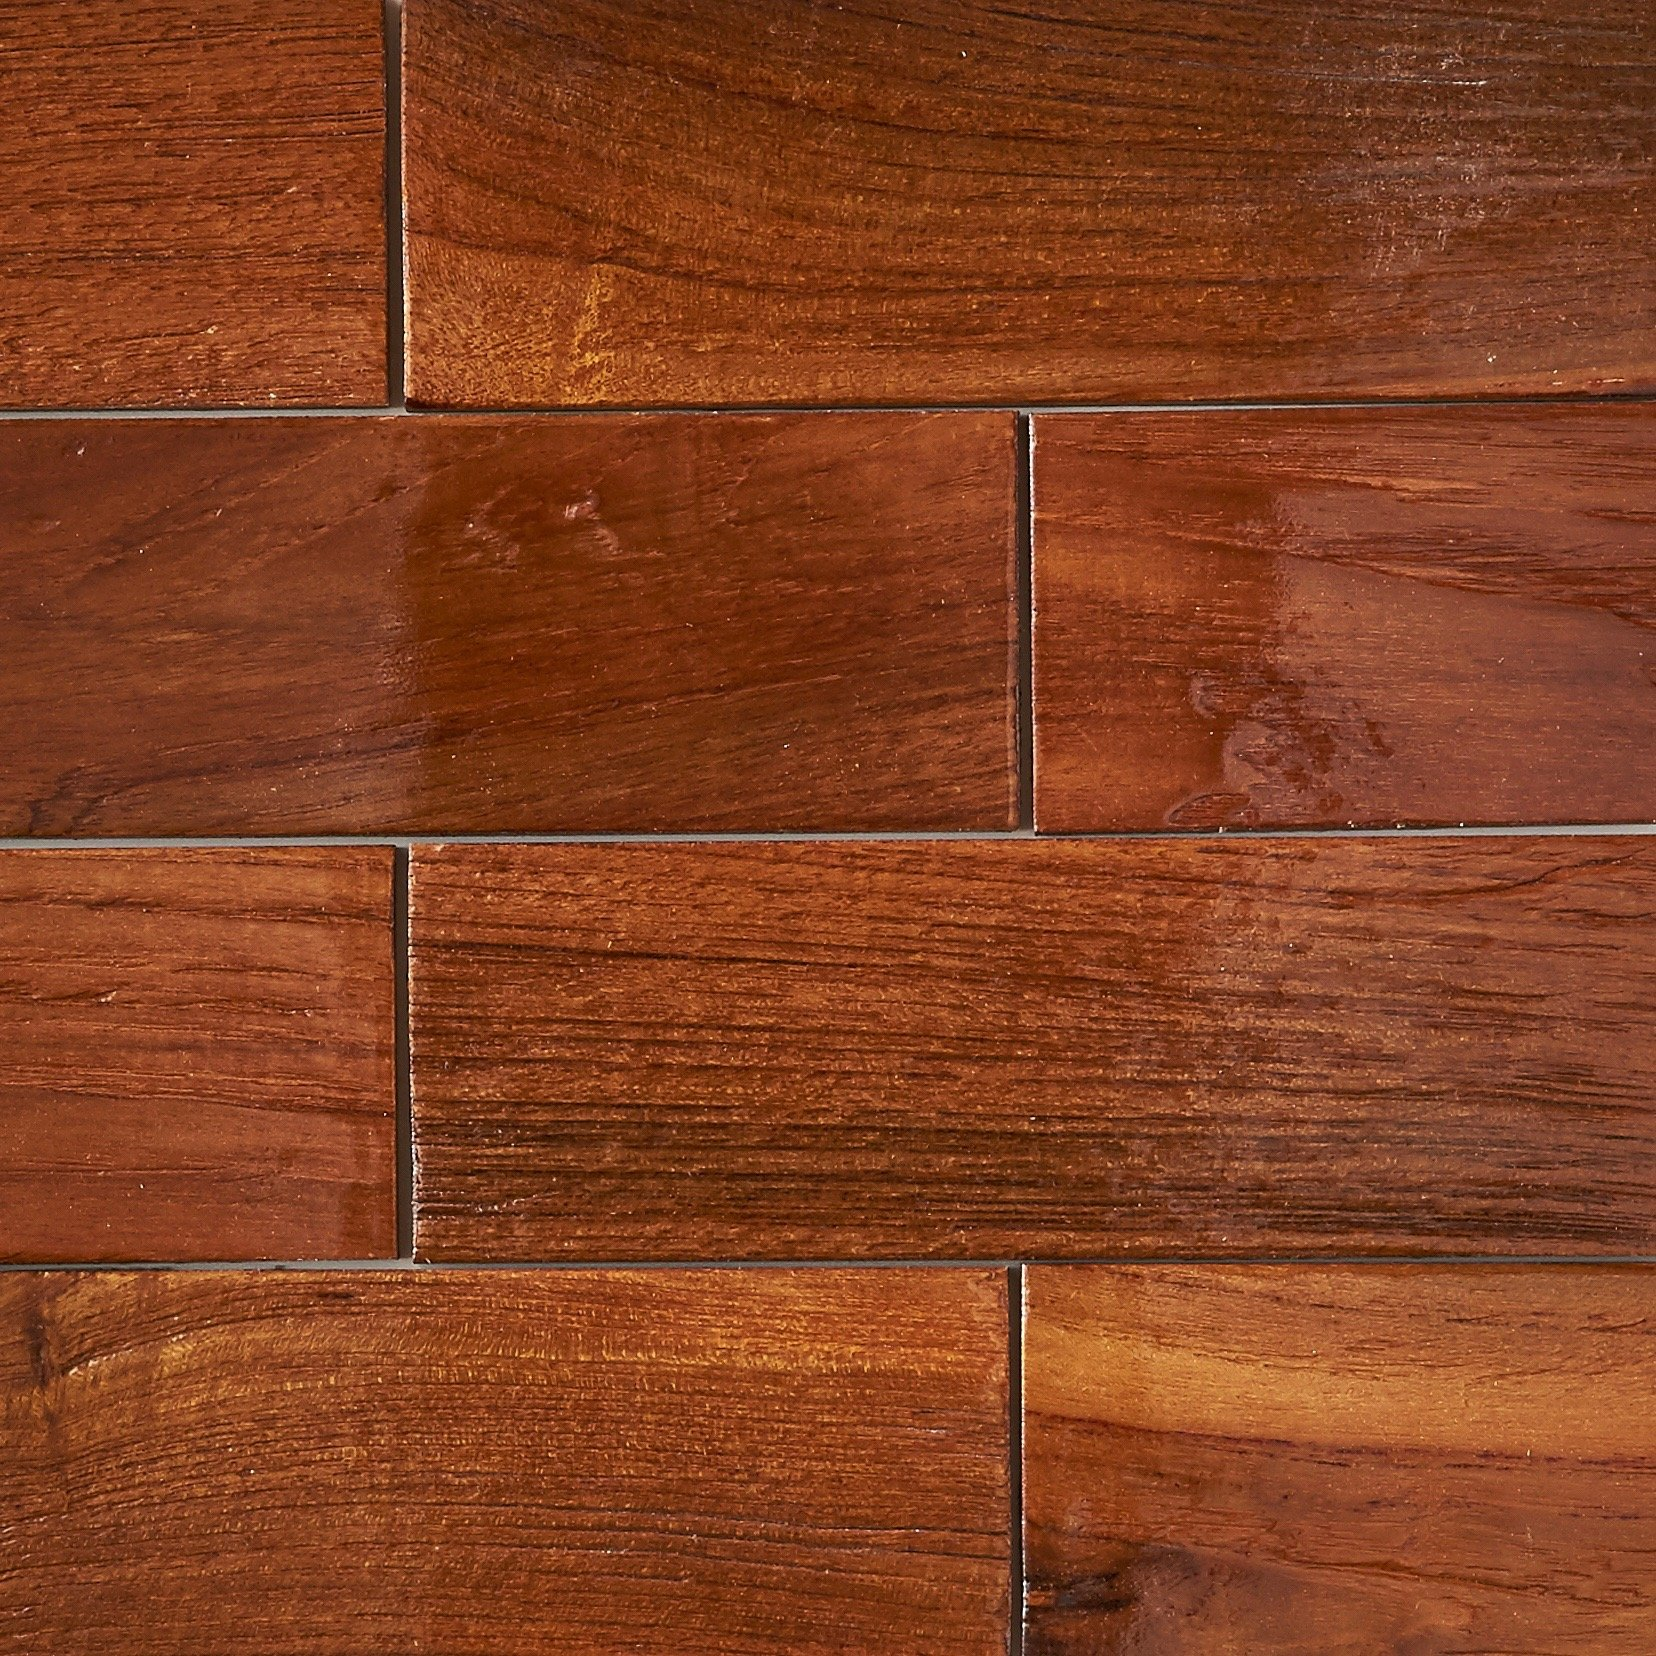 natural resin finish 11 - Teak Tile - Subway